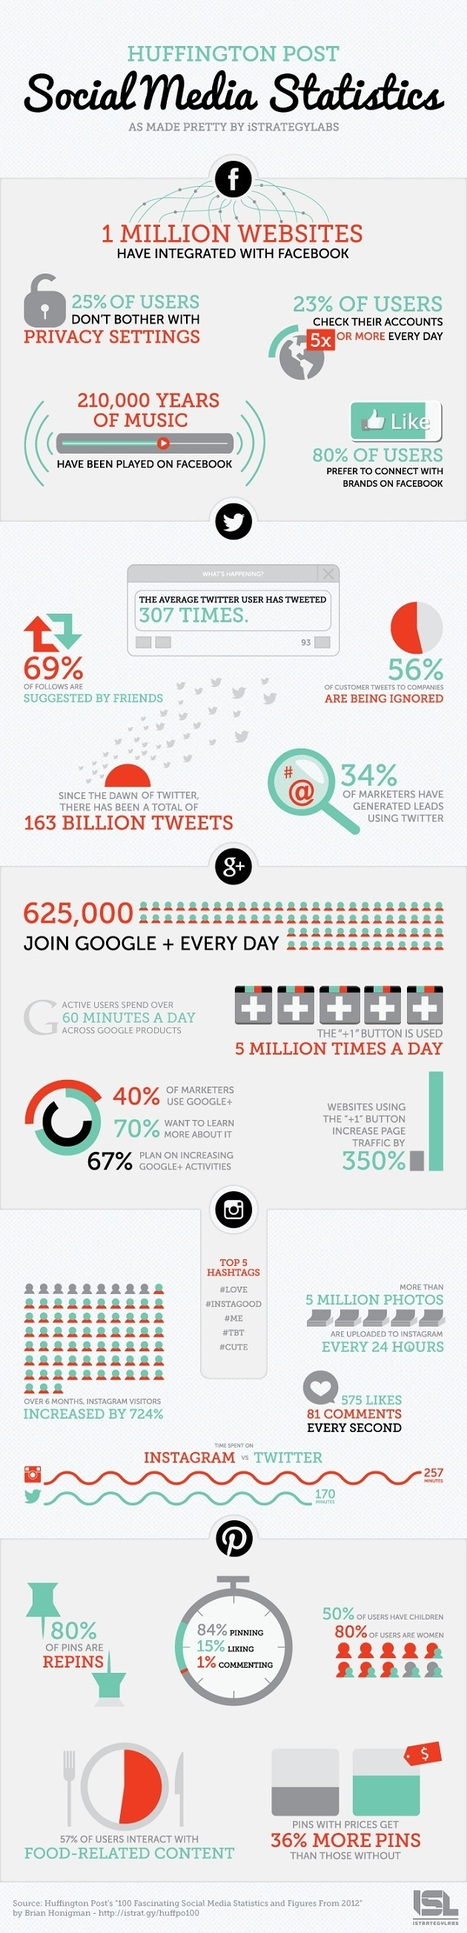 Infographic: 365 Days of Social Media | visualizing social media | Scoop.it